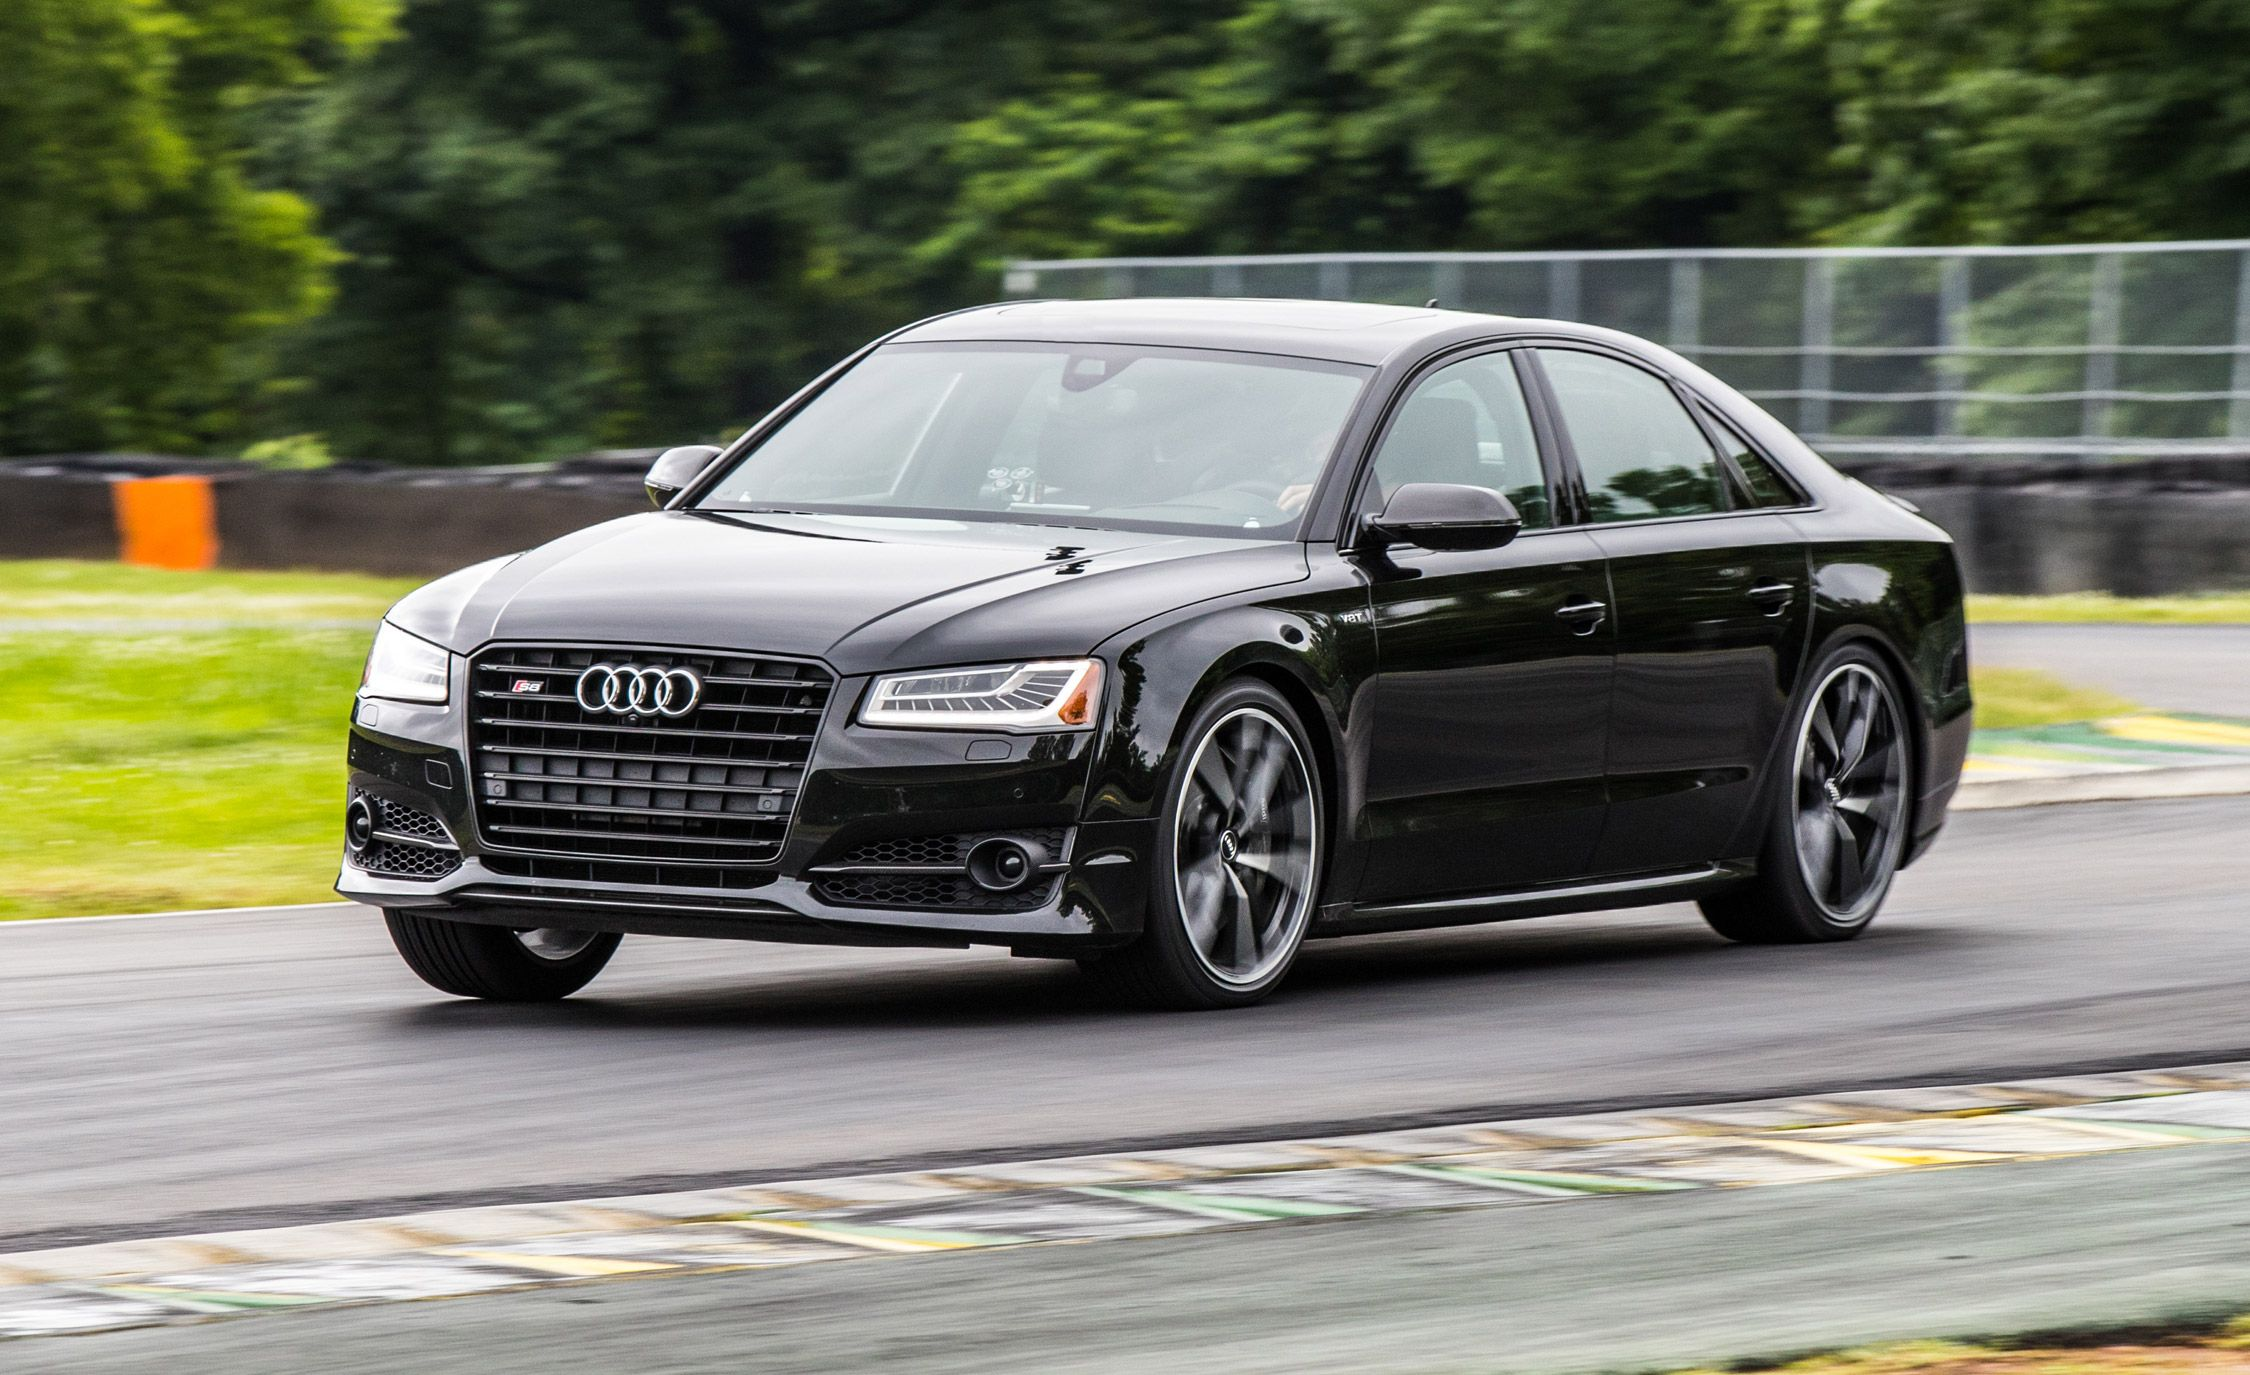 2018 Audi S8 Reviews Audi S8 Price Photos And Specs Car And Driver